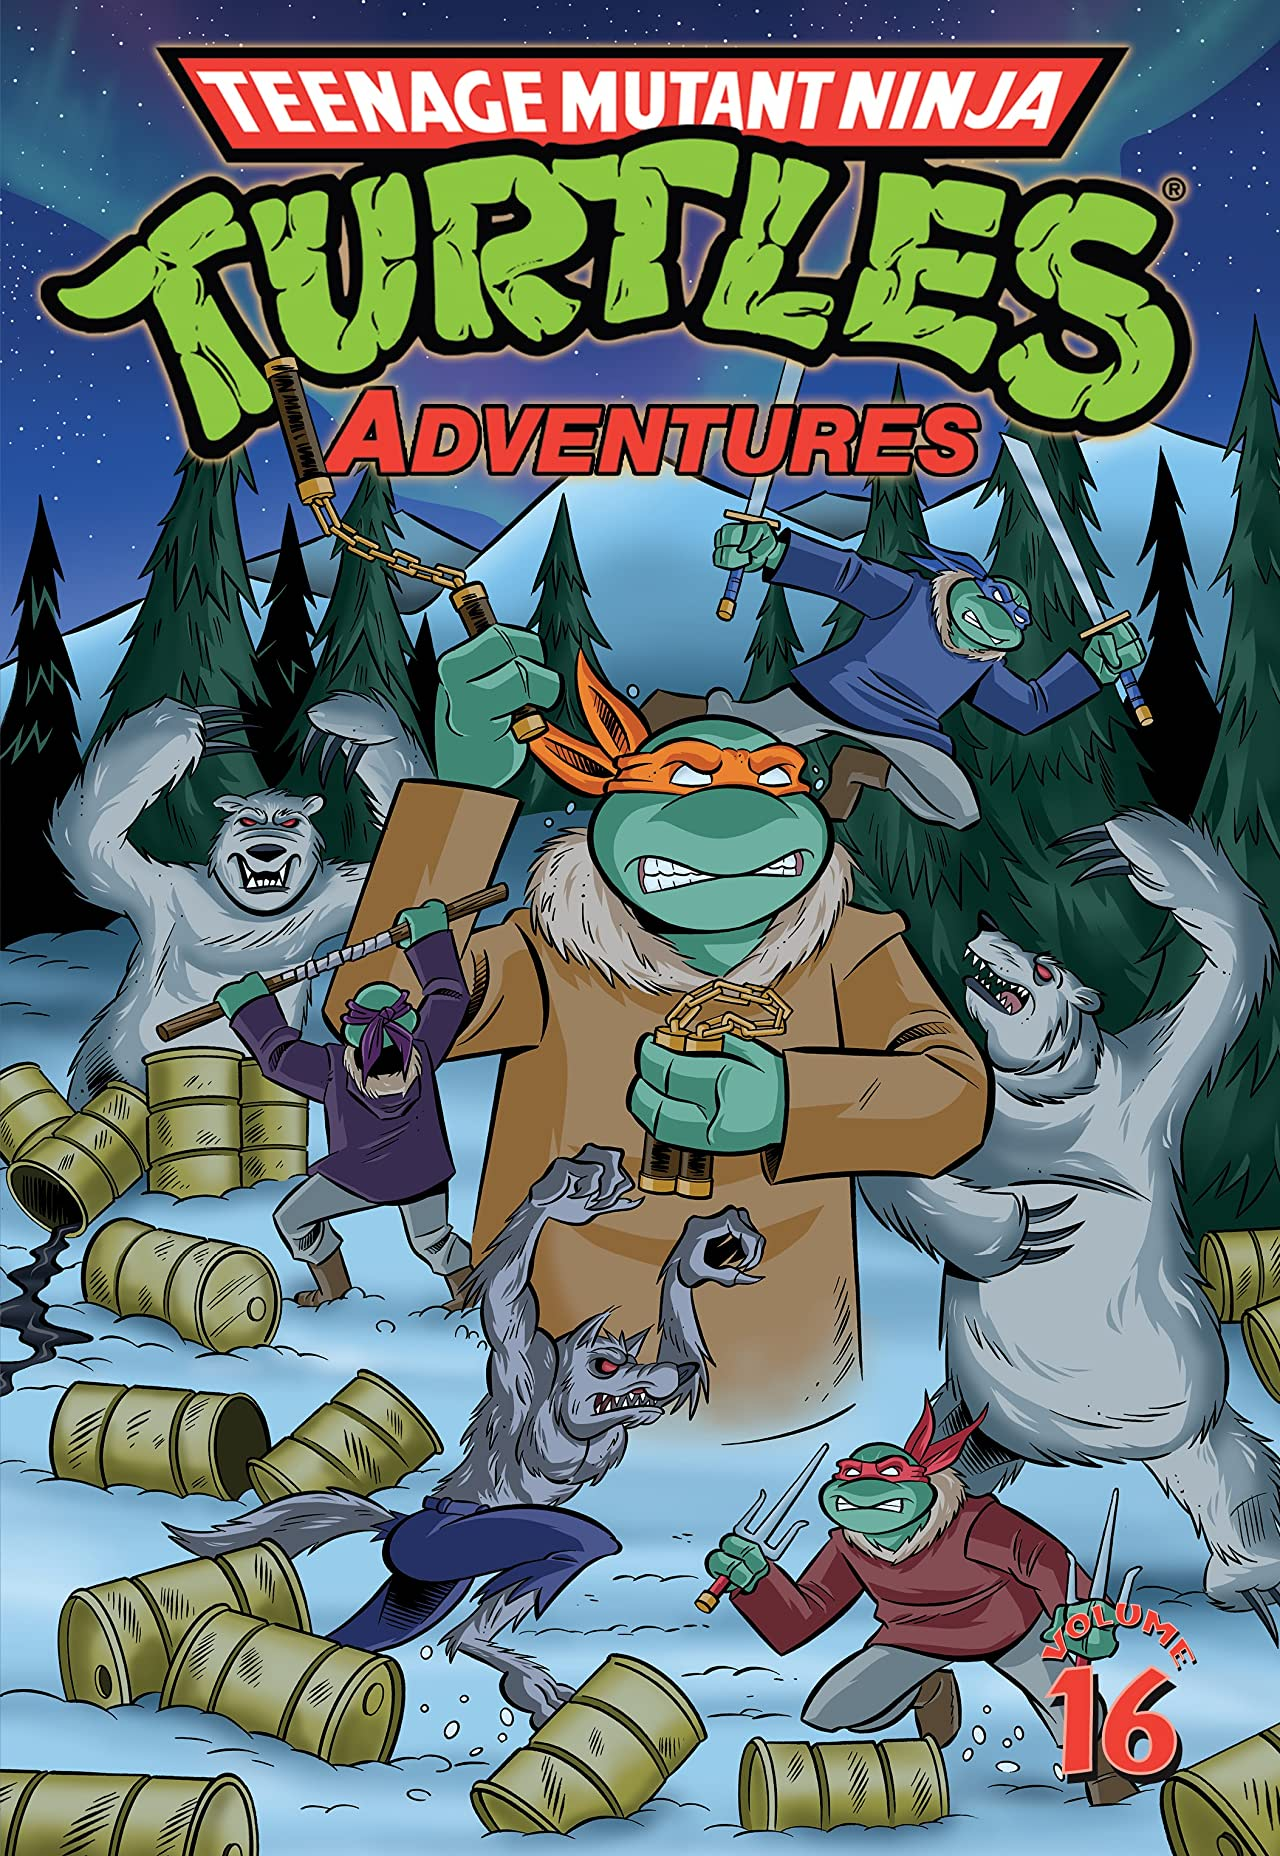 Teenage Mutant Ninja Turtles Adventures Vol. 16